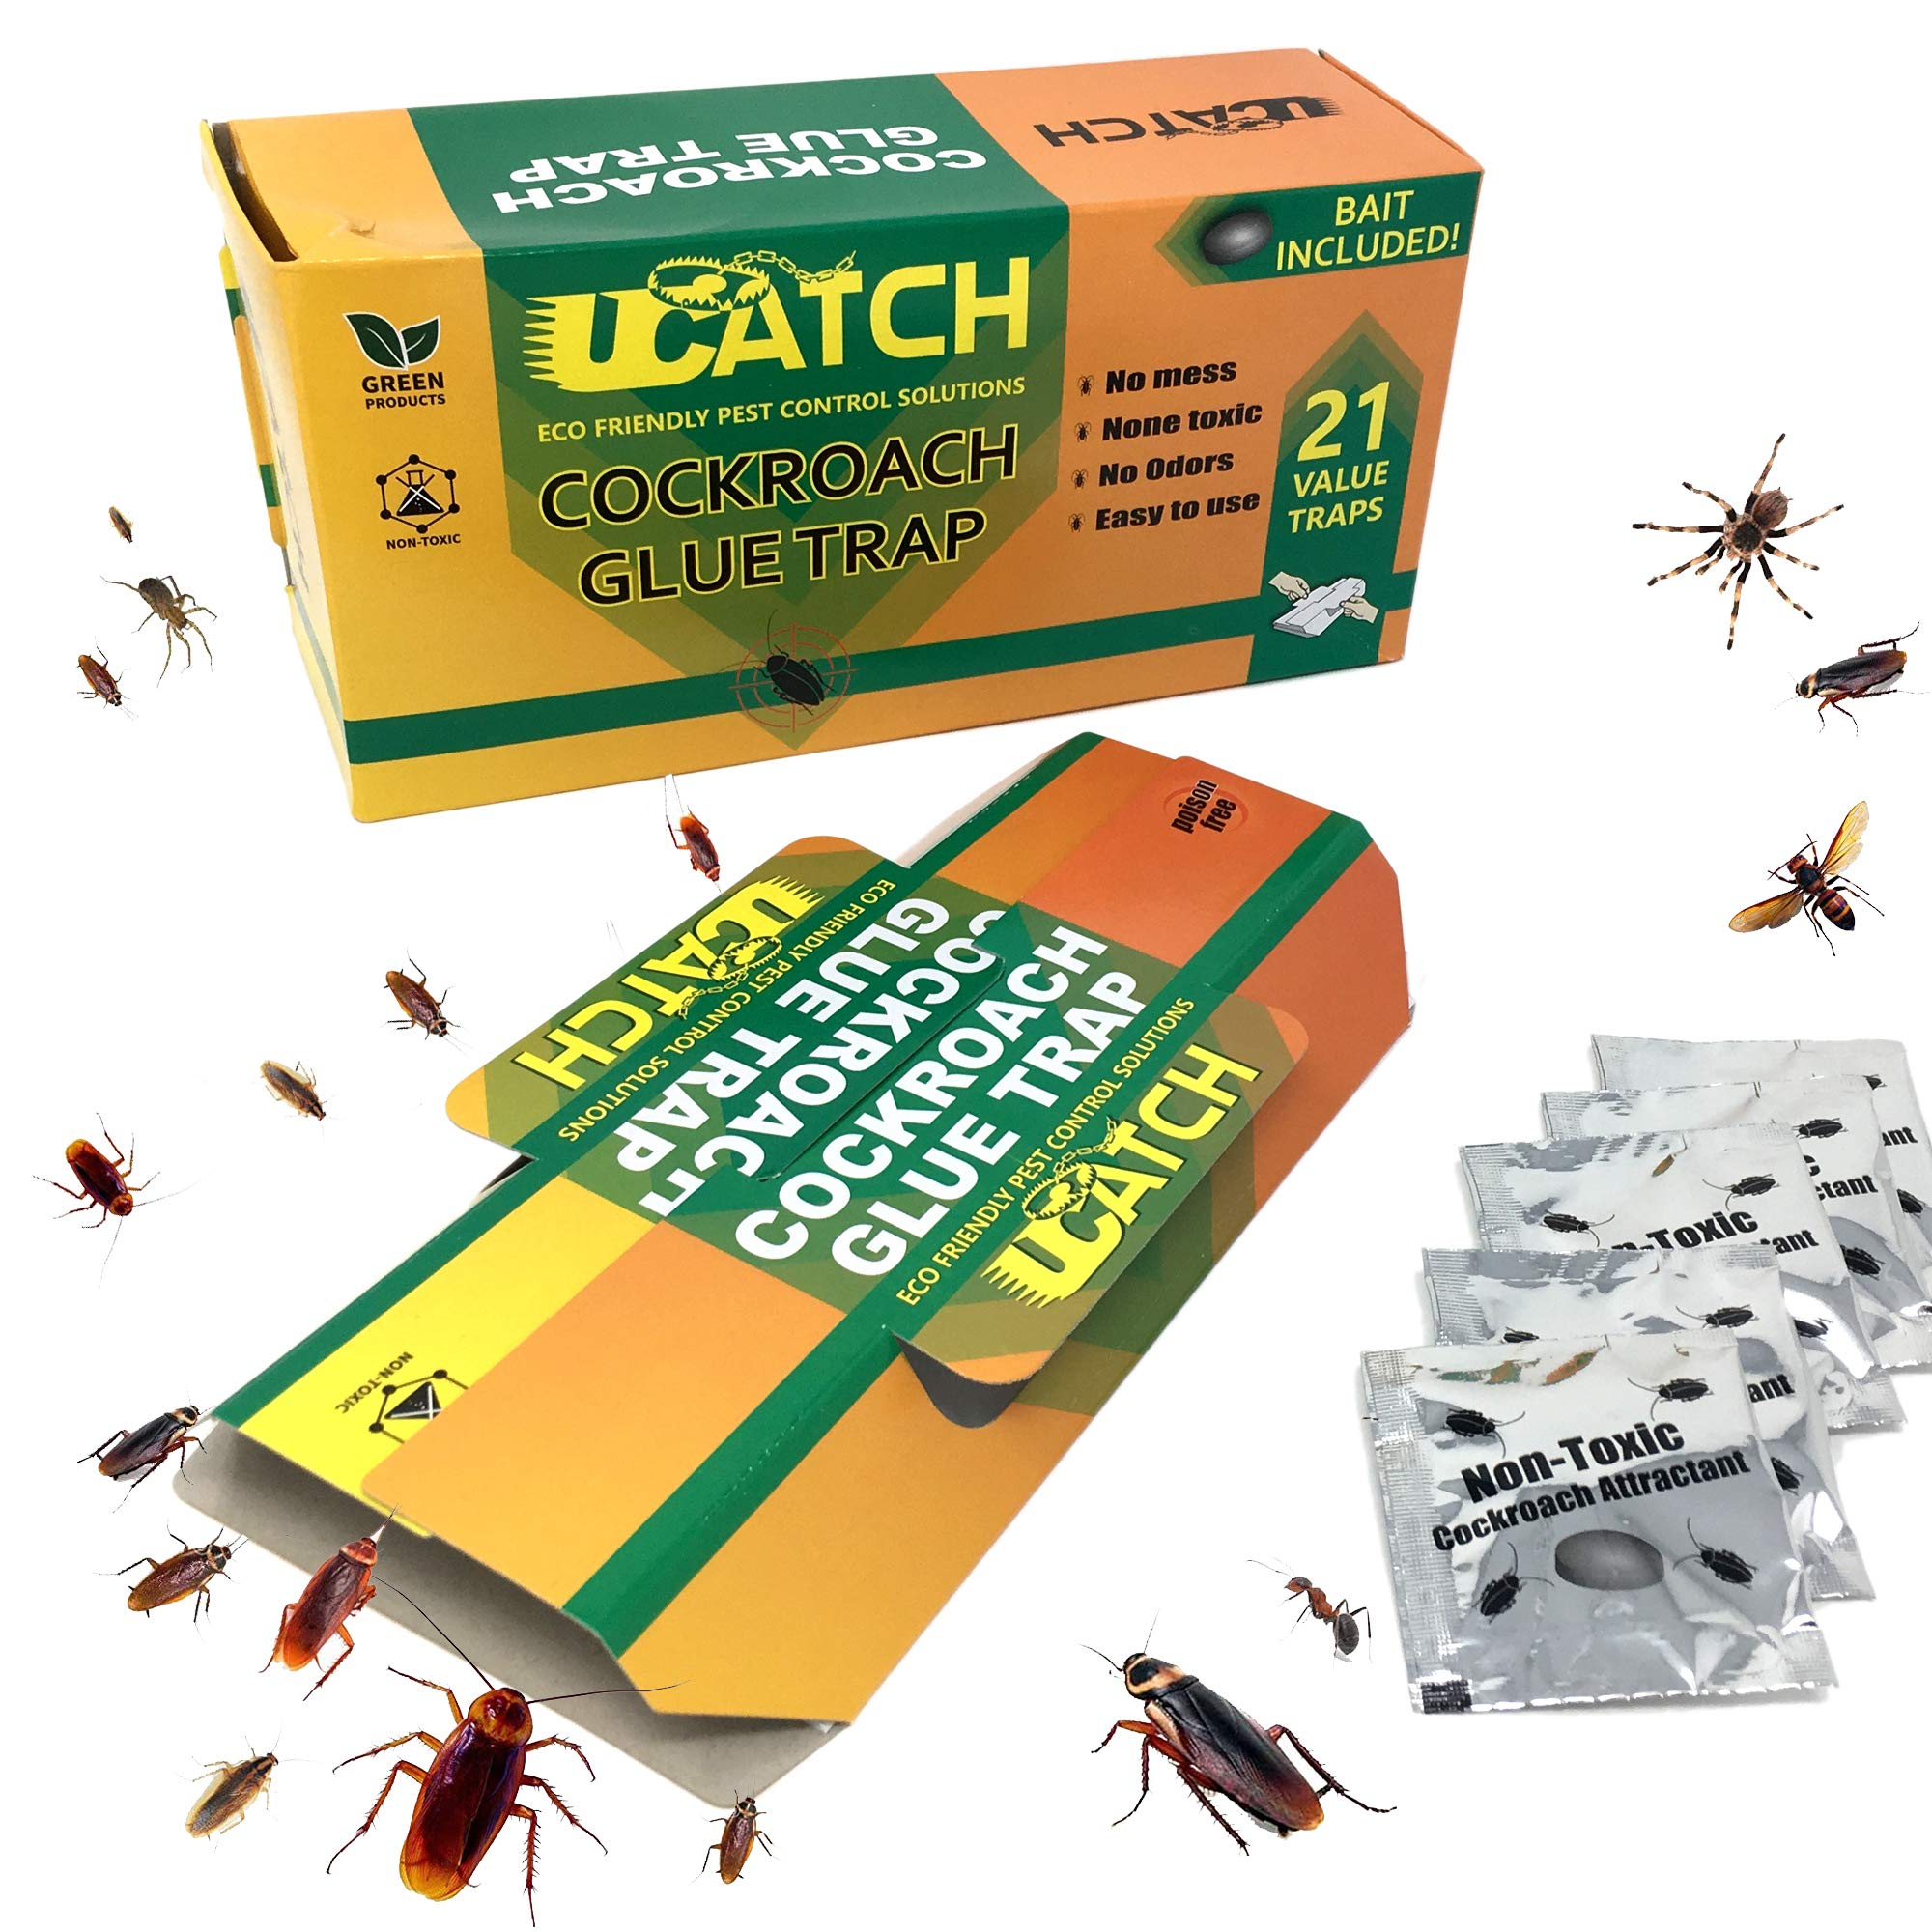 UCatch 21 Pack Cockroach Glue Trap, Bait Included, Effective Solution| Eco- Friendly, Non Poison Pest Control Products, Chemical Free, Non Toxic | Works on Crawling Insects, Bugs, Spiders, Ants by UCatch